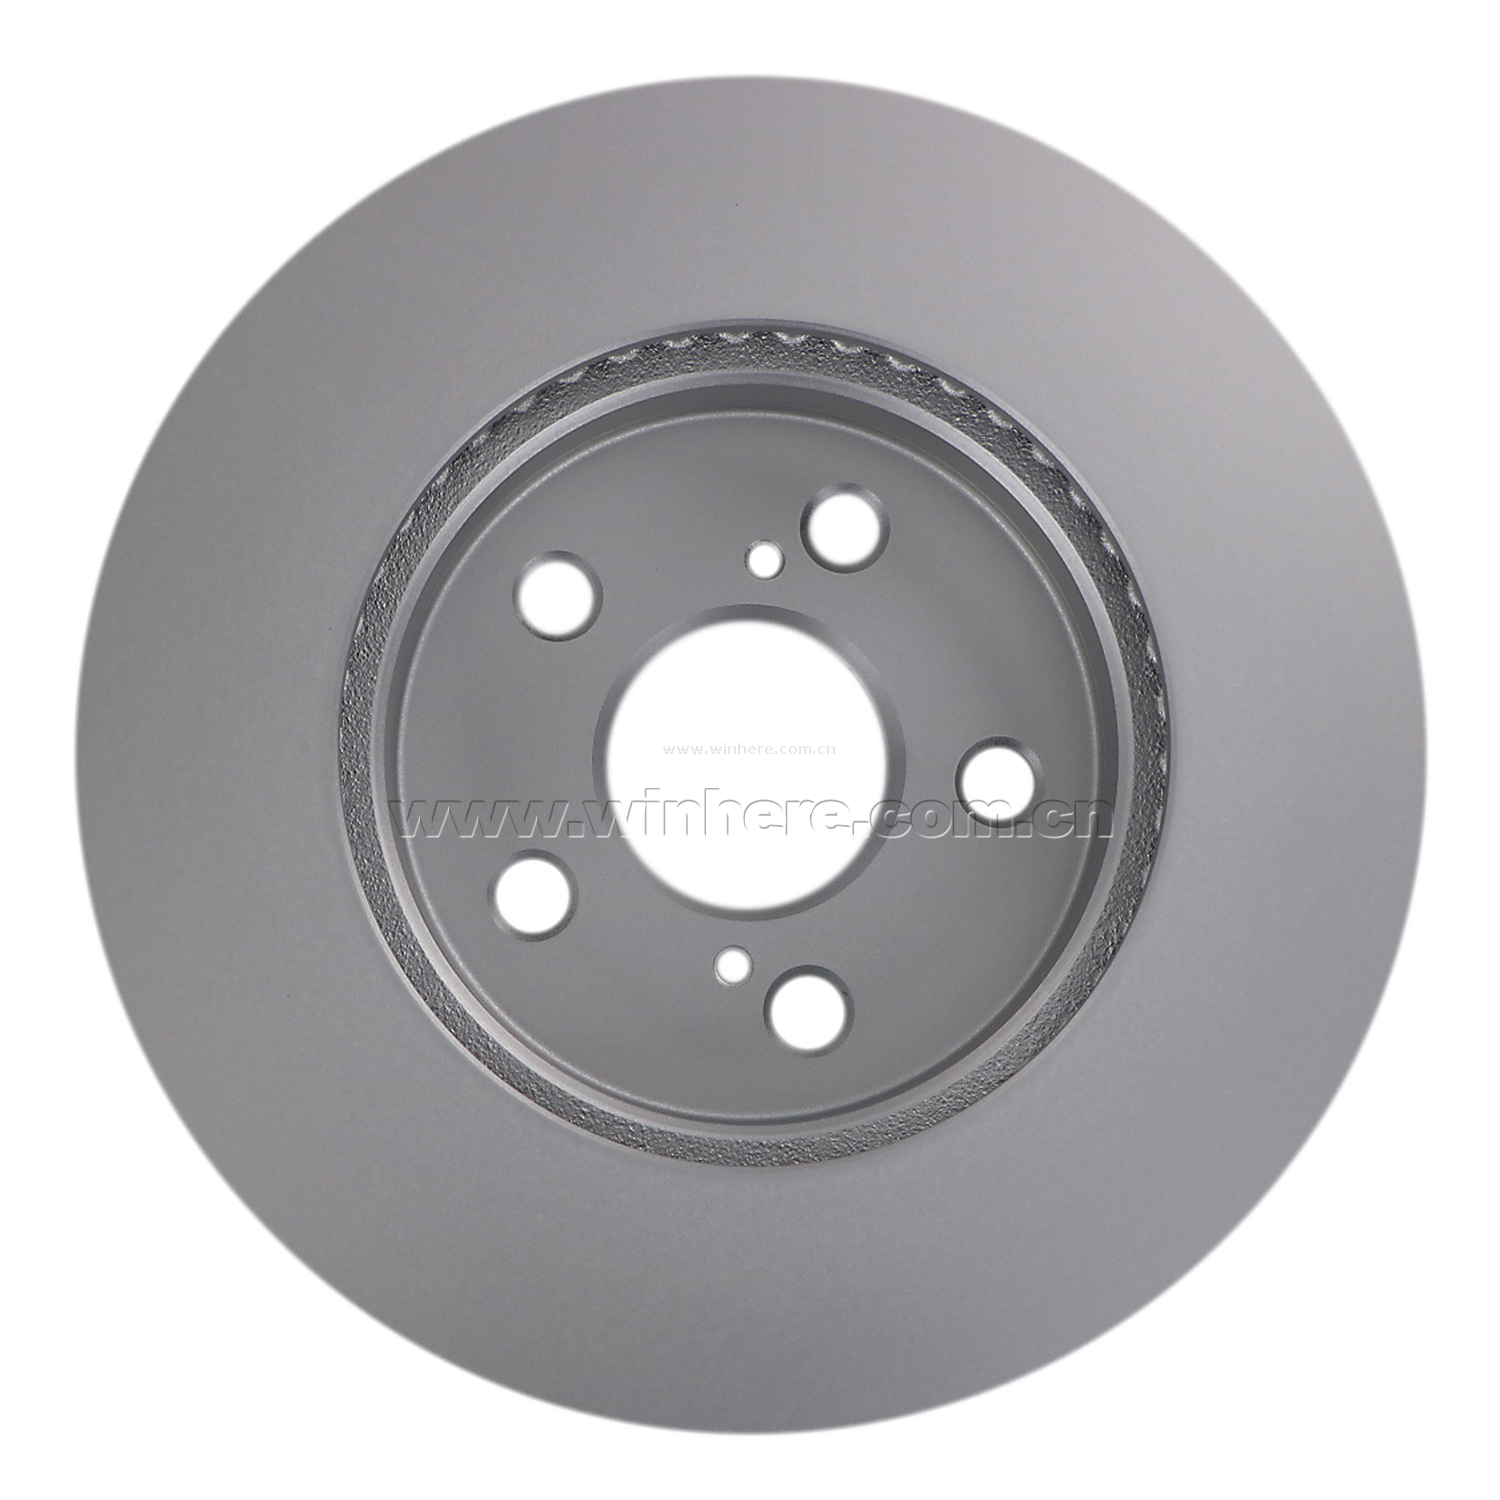 High Quality Drilled Front Brake Disc ECE R90